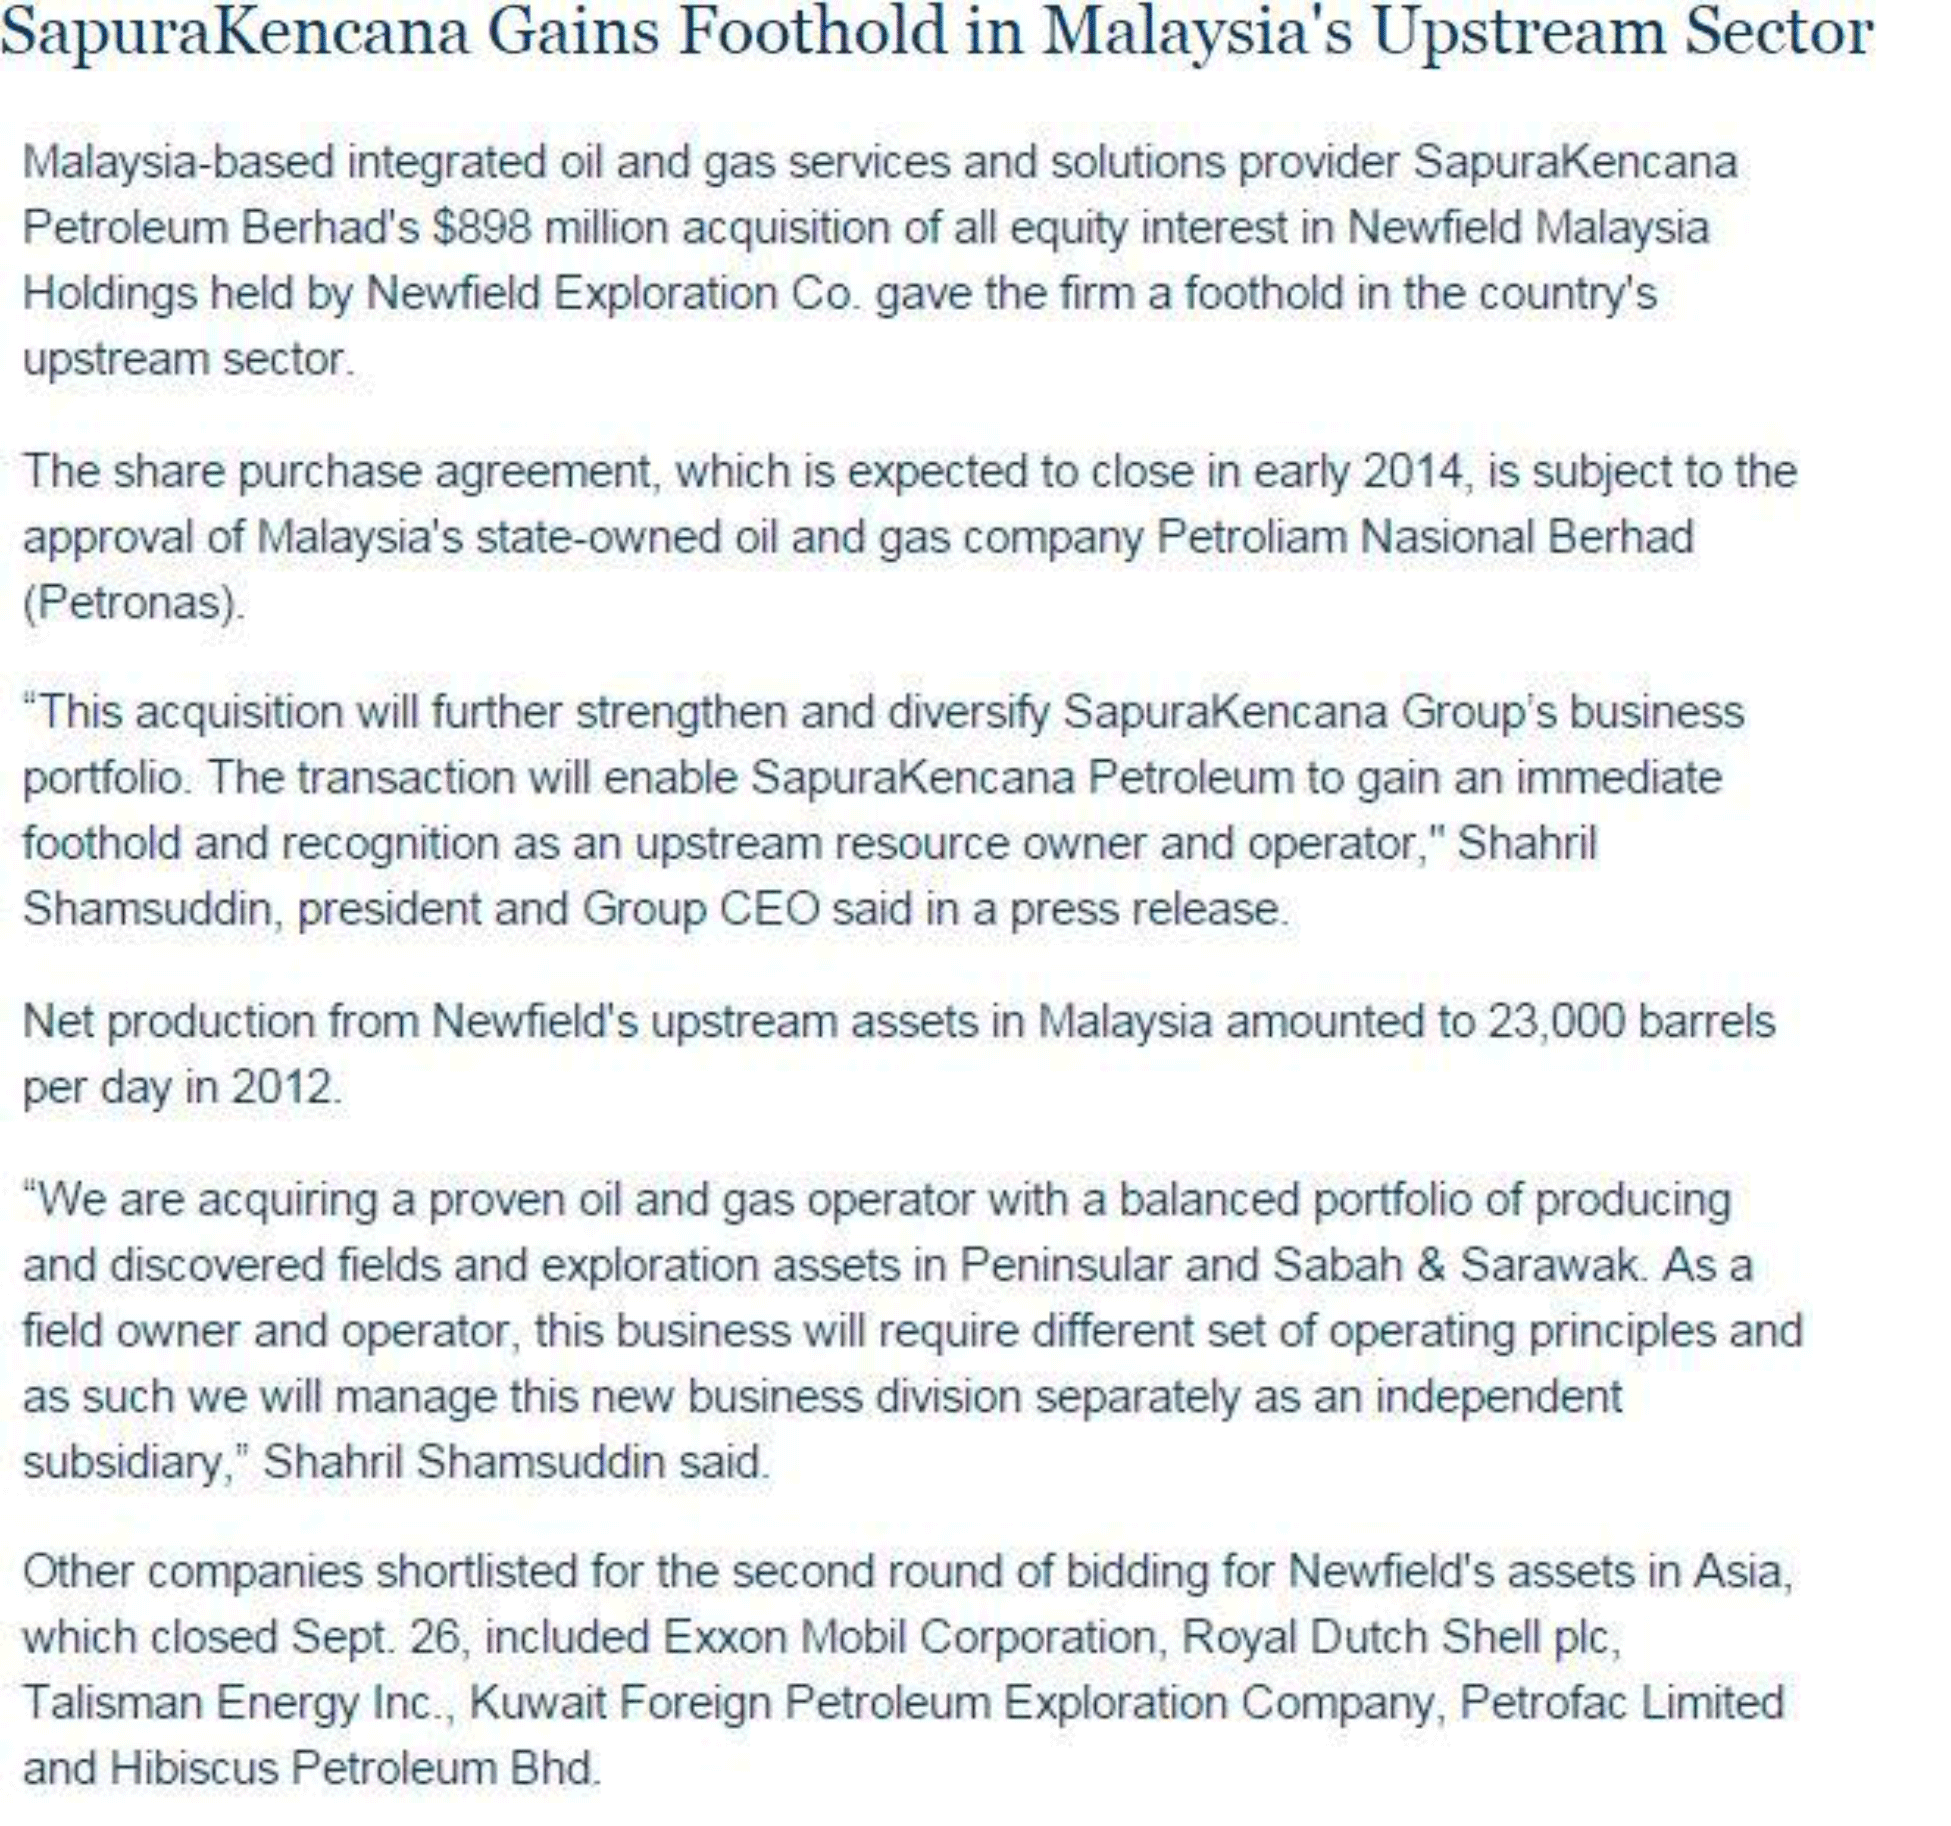 Rigzone---SapuraKencana-gains-foothold-in-Malaysia's-upstream-sector-(231013)